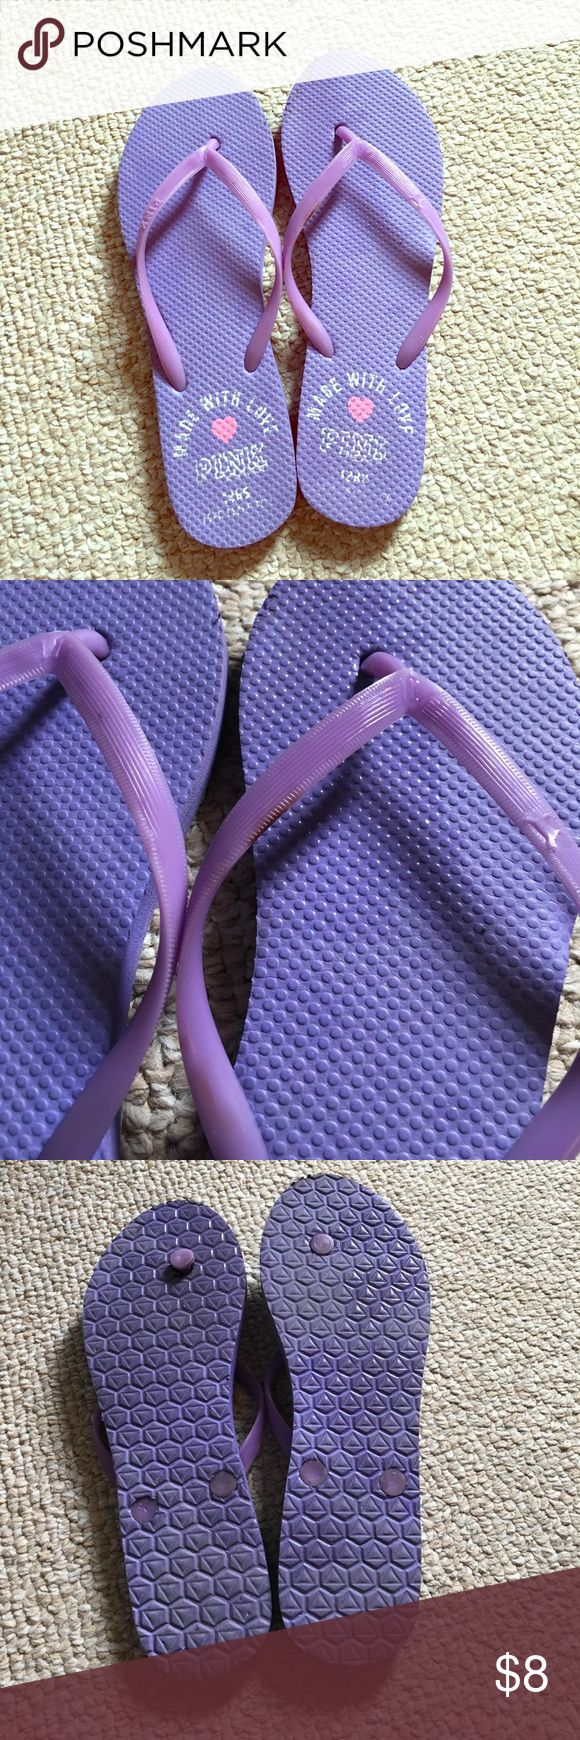 Victoria's Secret flip flops Used, thoroughly cleaned purple flip flops (Pink by Victoria's Secret brand) - size 8 PINK Victoria's Secret Shoes Sandals